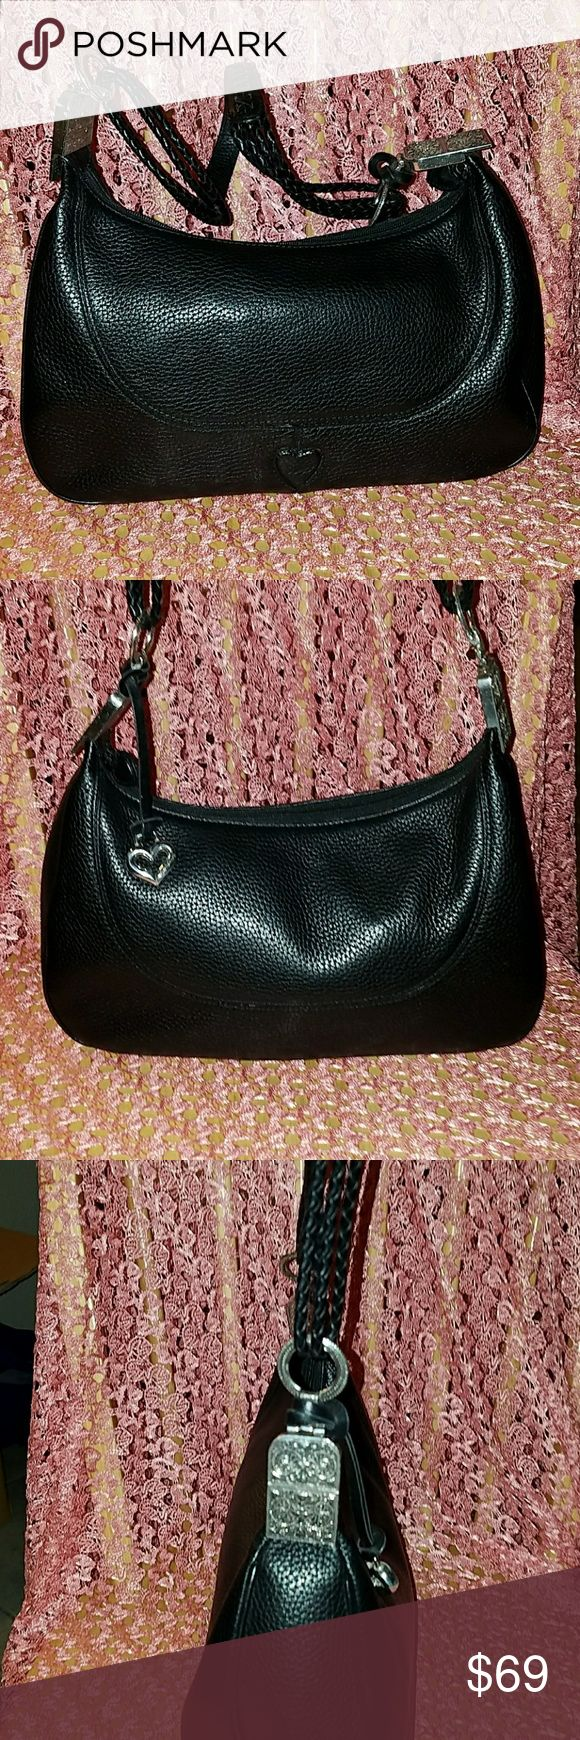 Brighton black pebbled leather bag Beautiful detailed black pebbled leather bag, Brighton heart fob,braided leather straps, silver hardware no tarnish,no wear on bag,red lining Brighton Bags Shoulder Bags